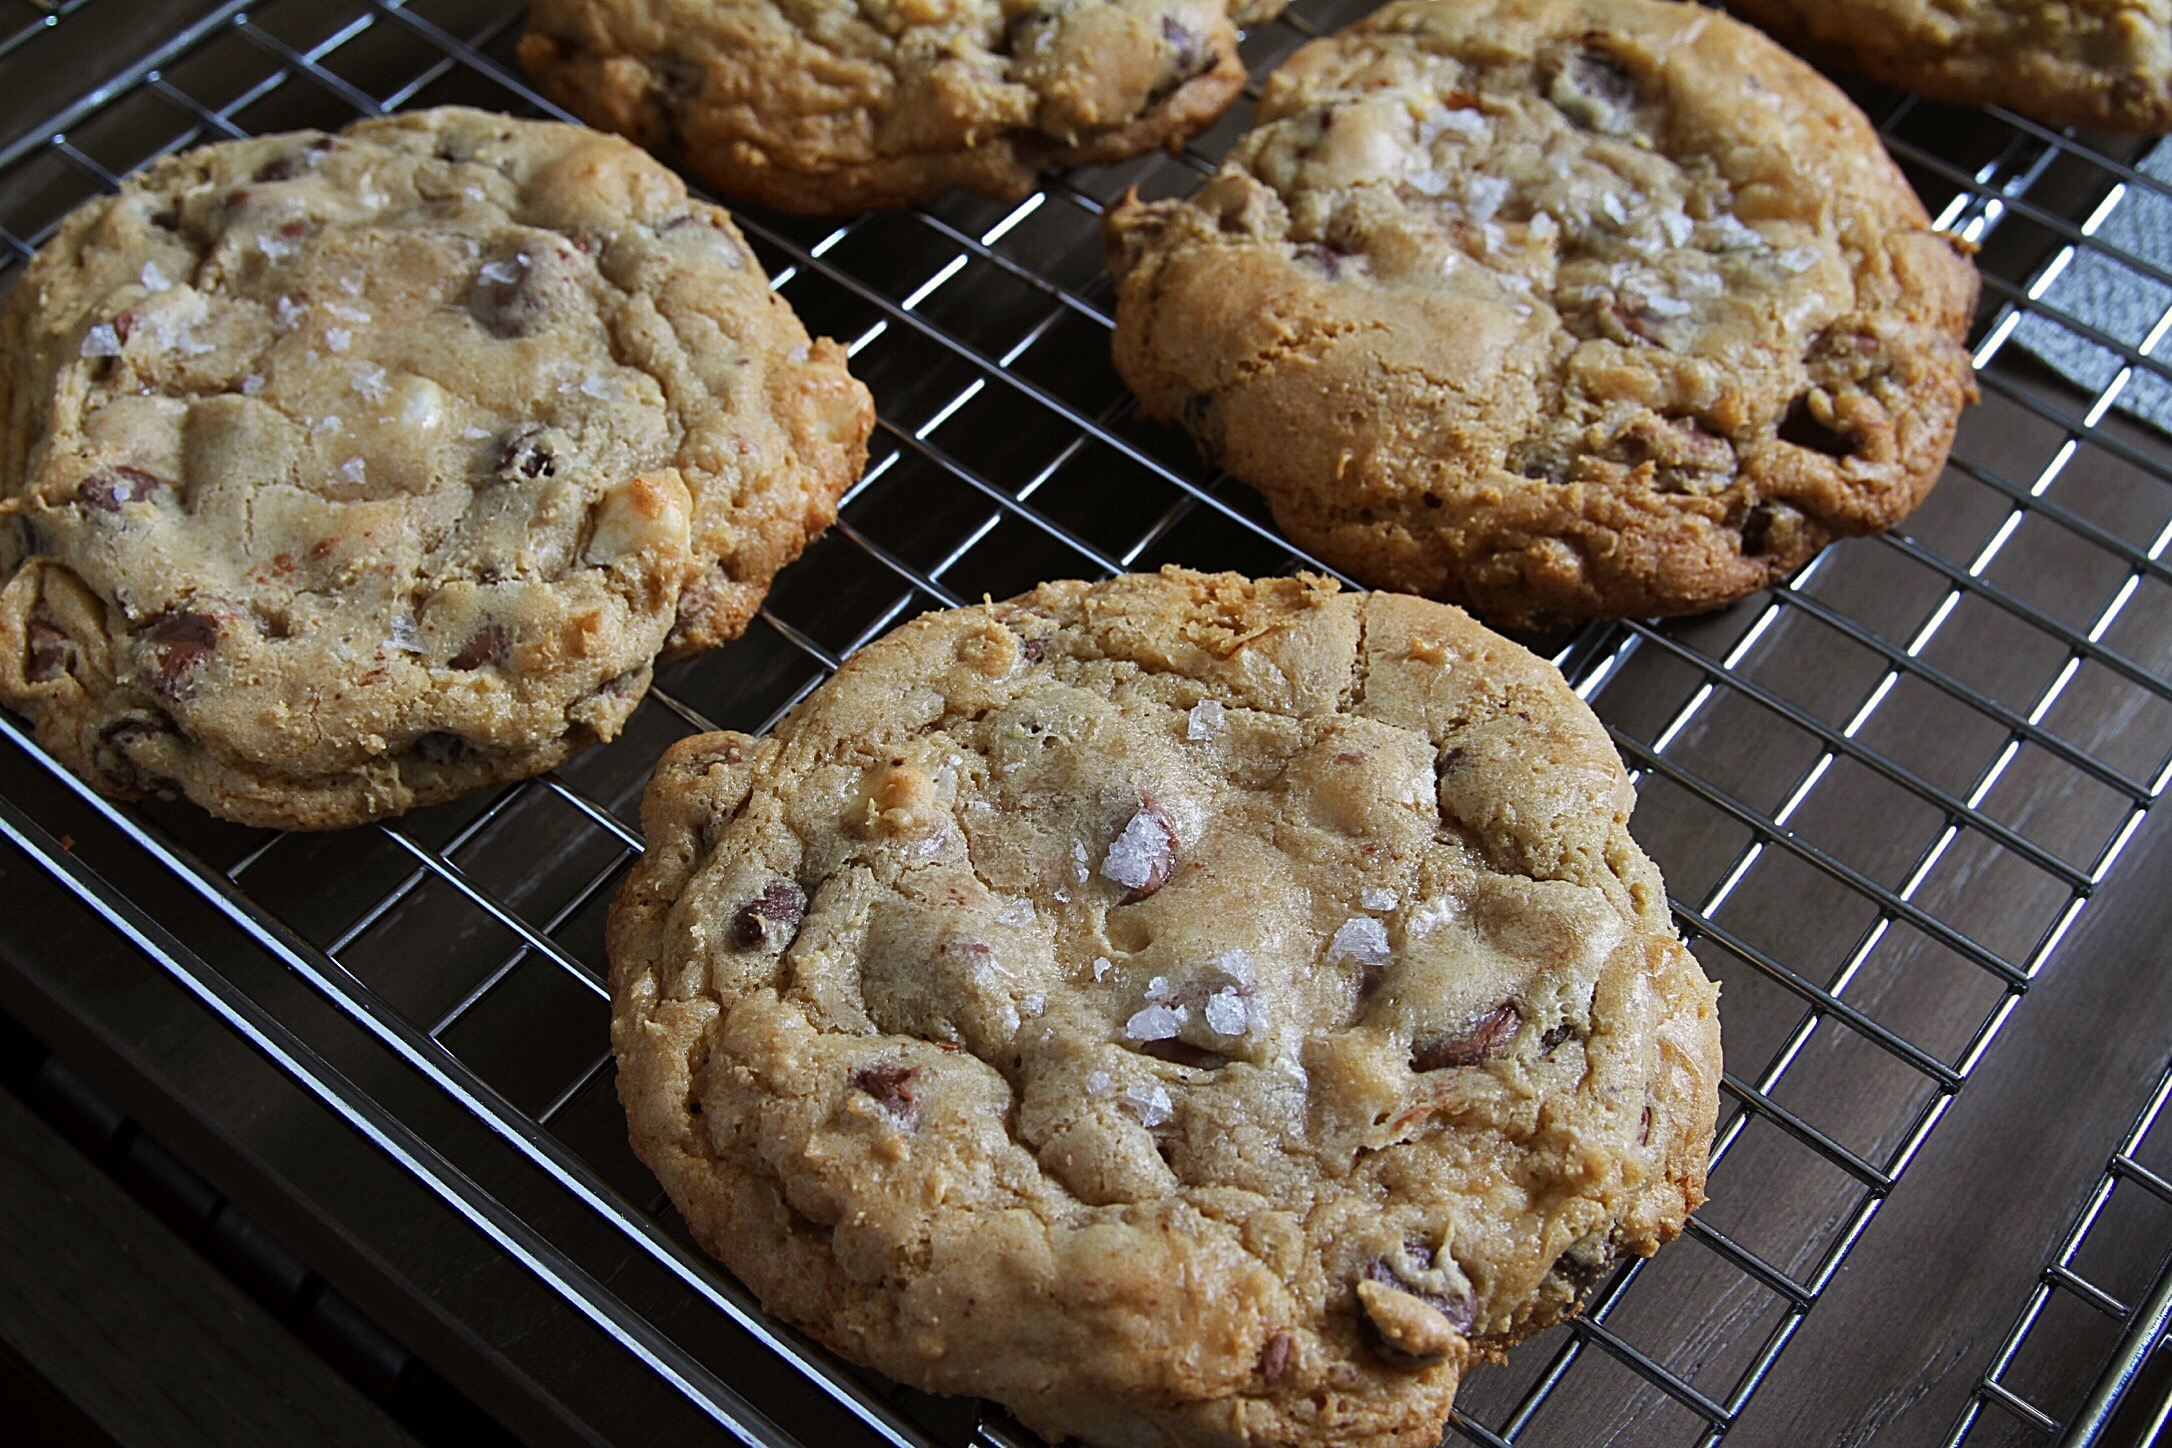 Triple-chocolate chunk GF cookies topped with sea salt. Hot out of the oven.